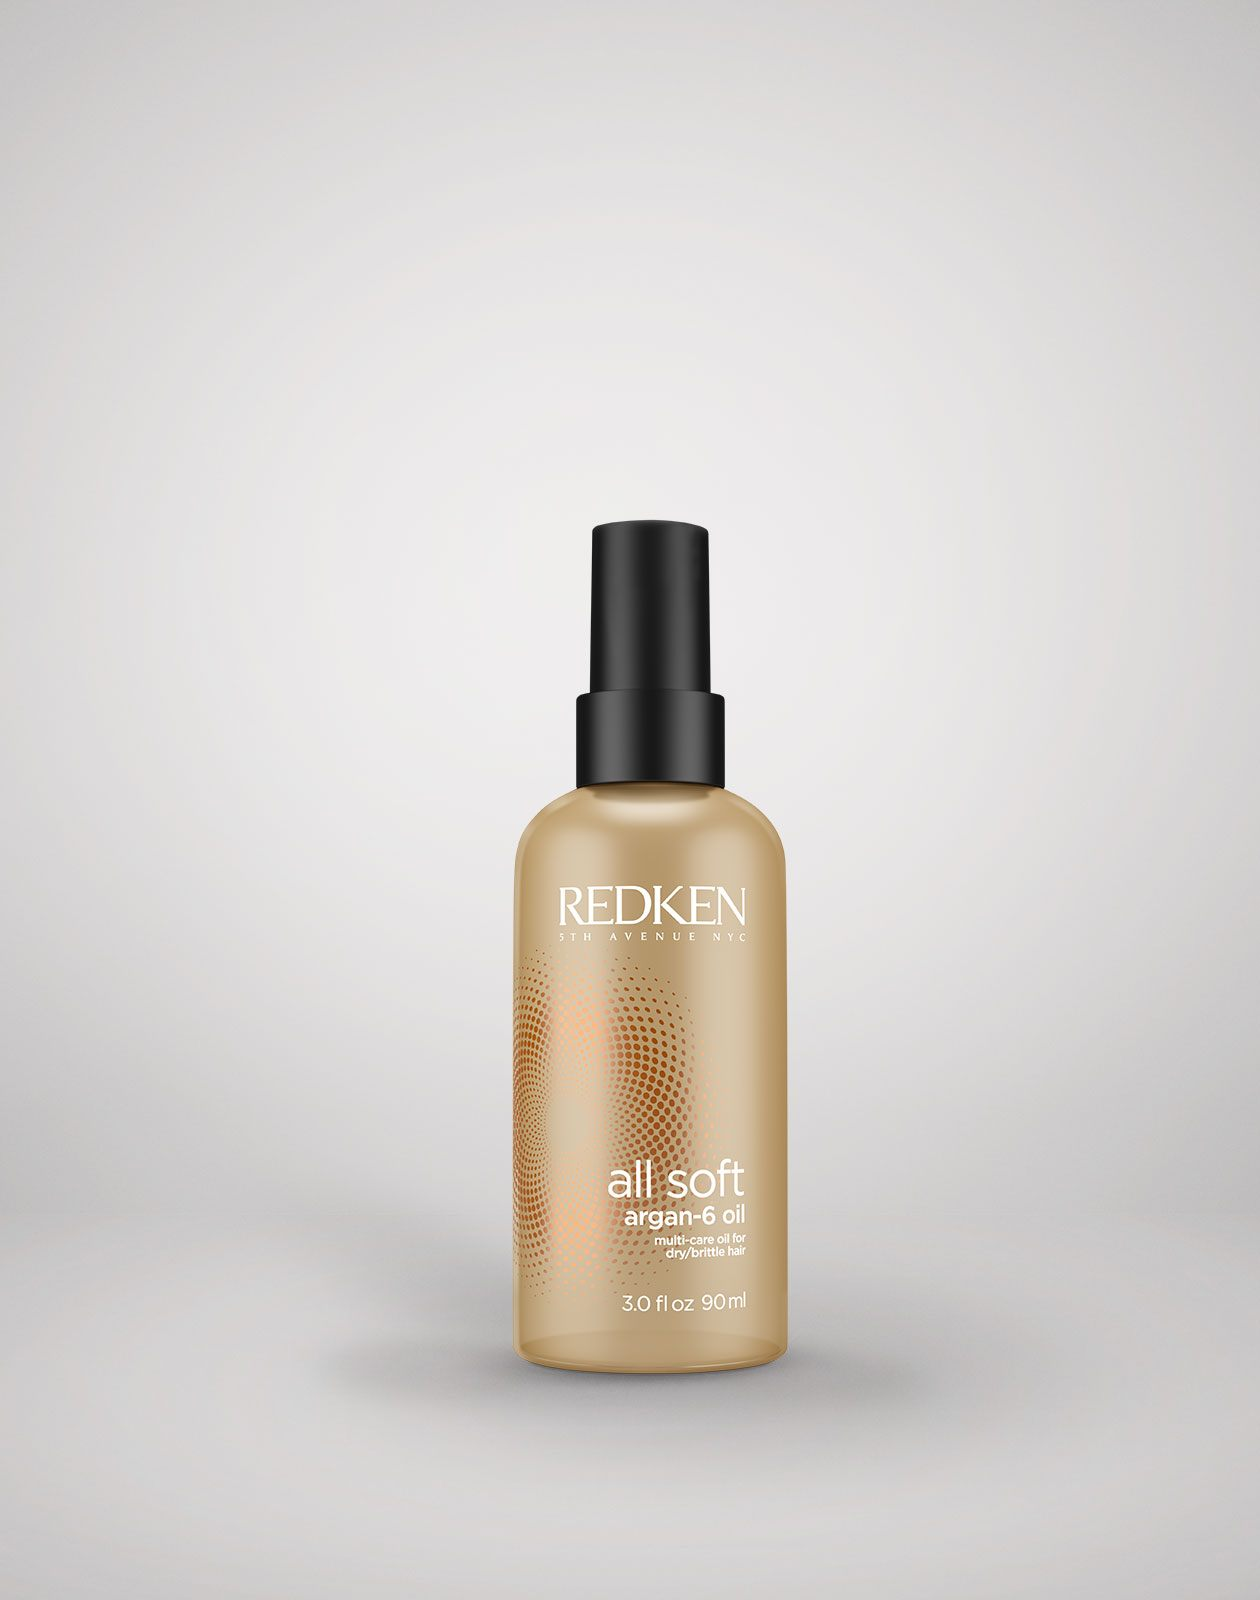 All Soft Argan Oil